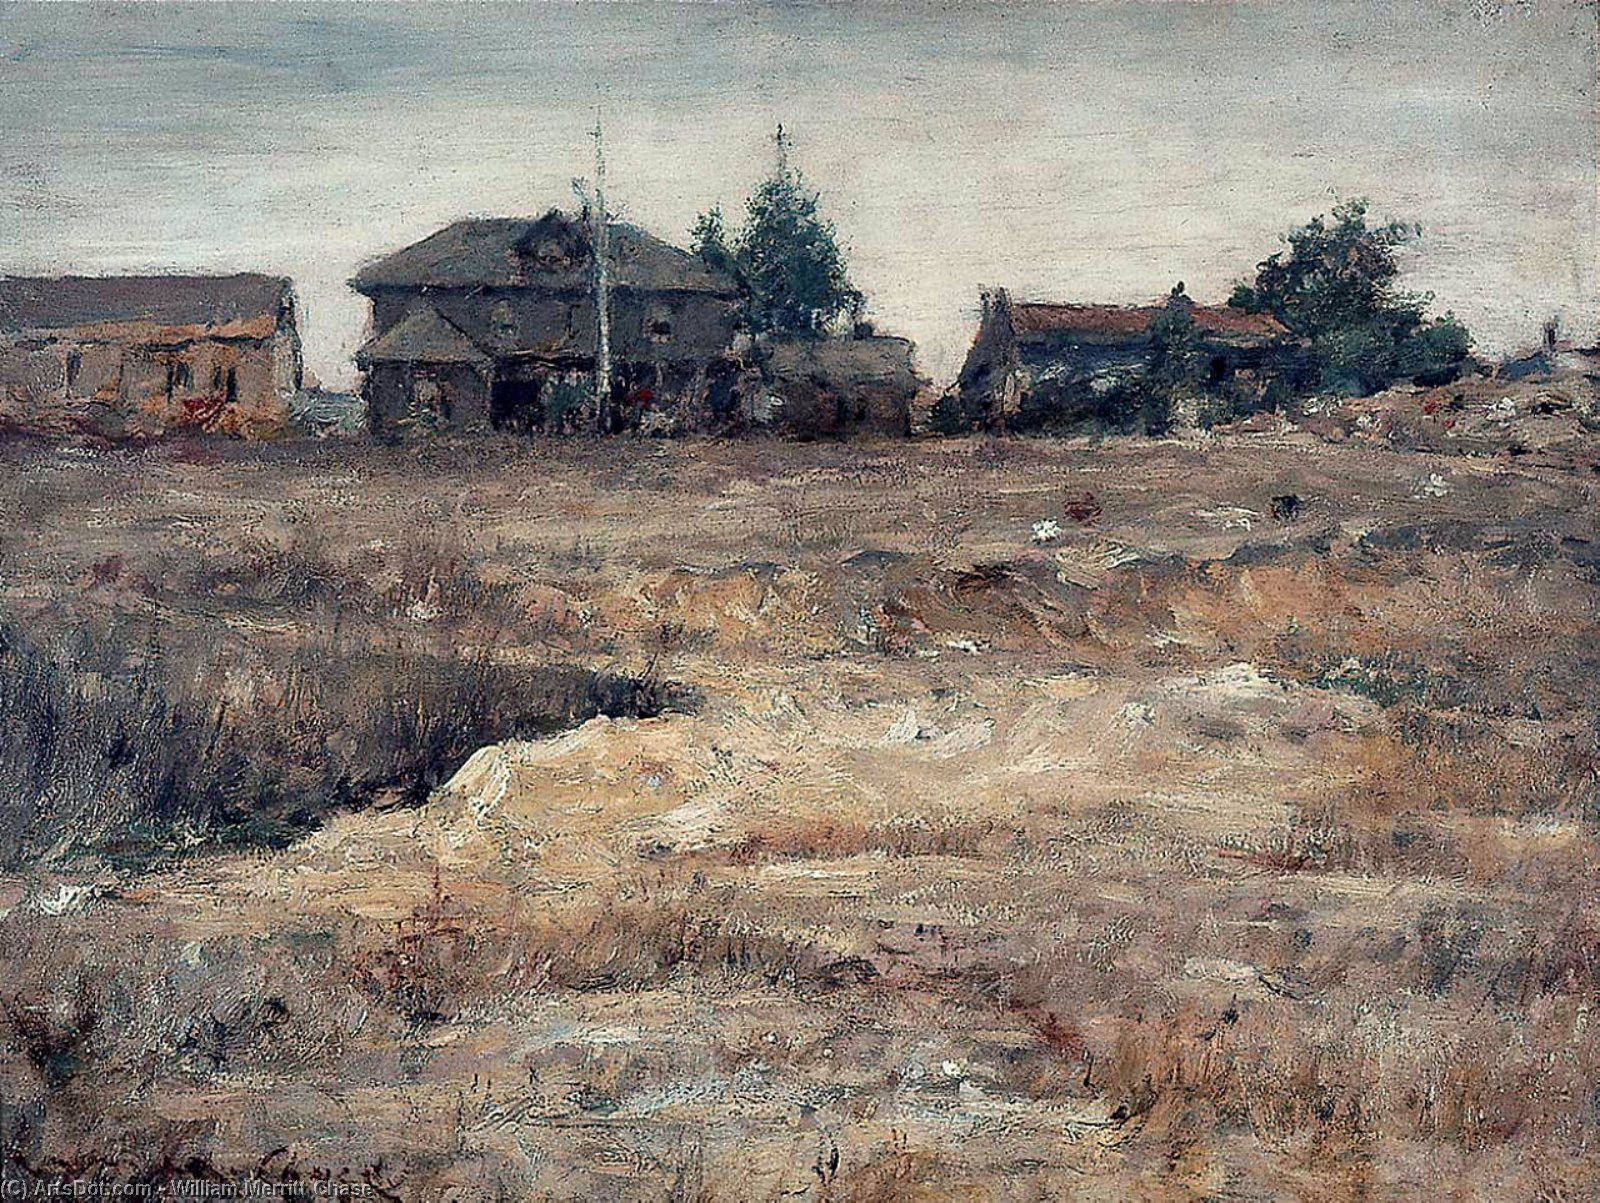 Monterey, California, 1914 by William Merritt Chase (1849-1916, United States)